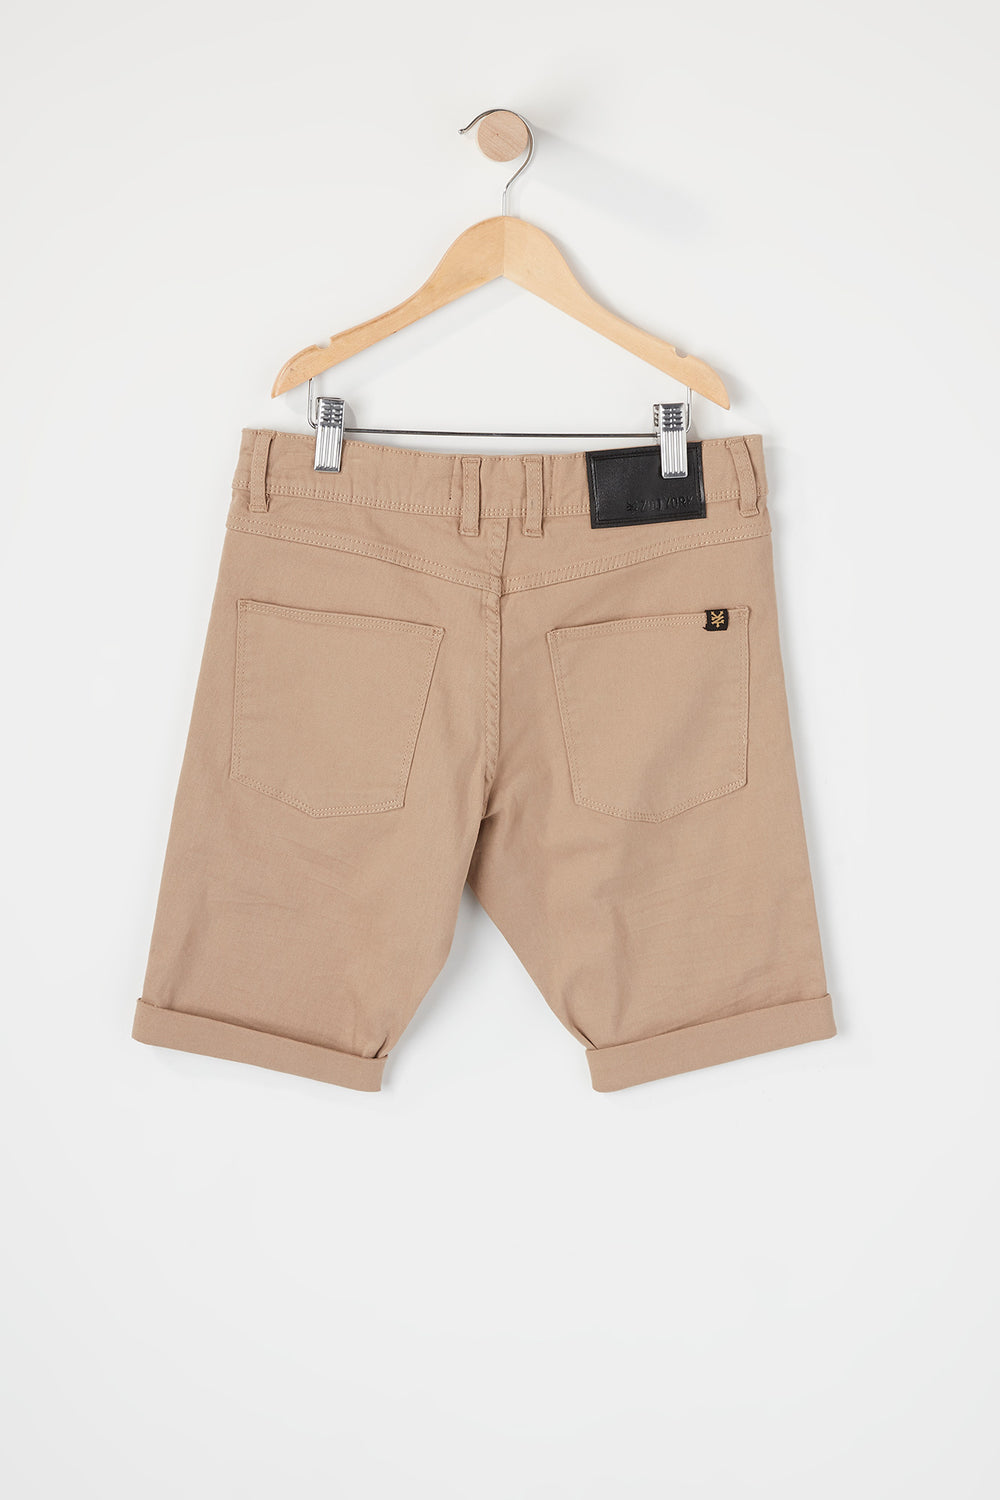 Zoo York Boys Solid Shorts Sand